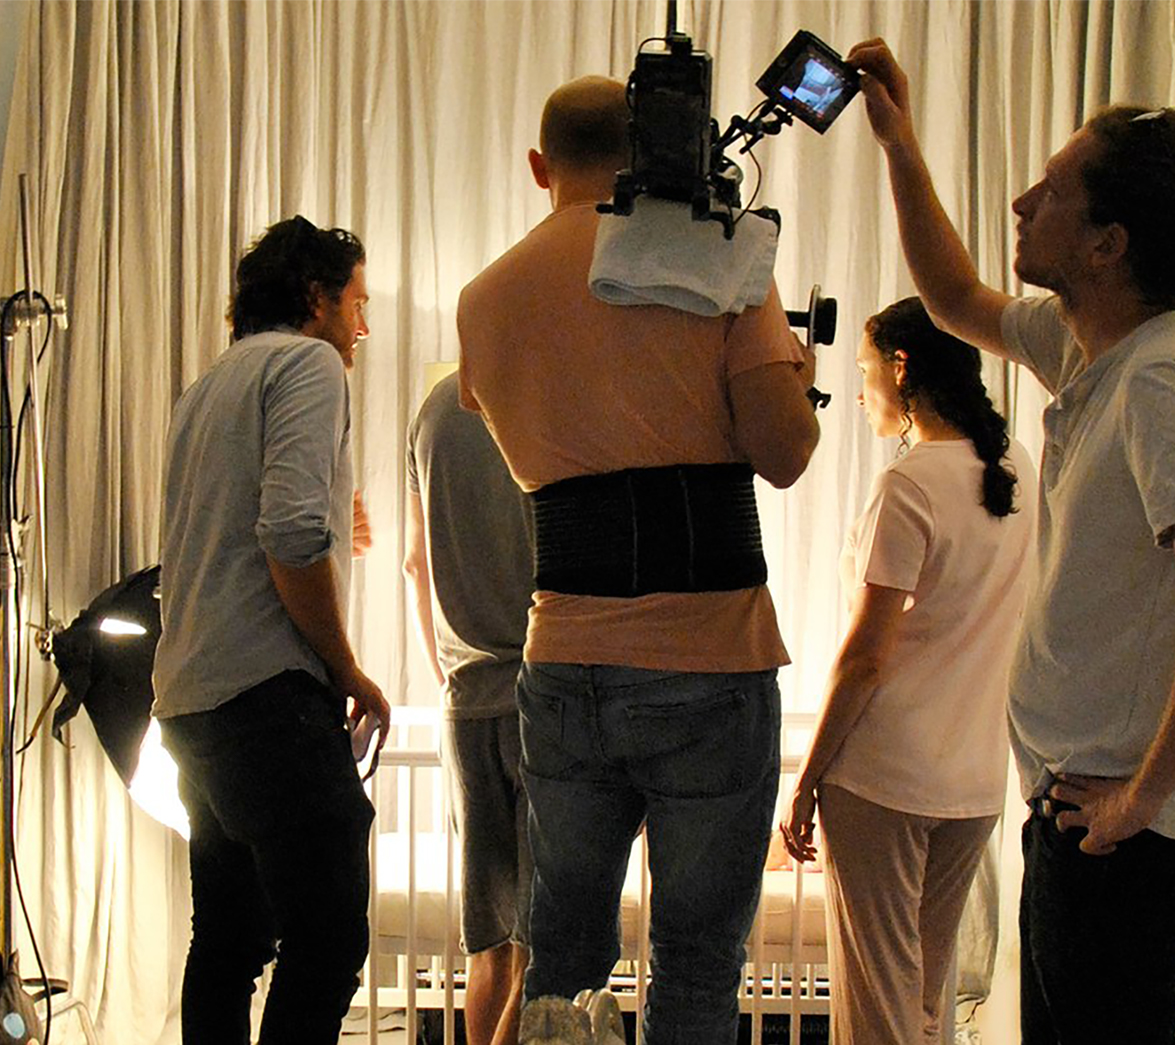 Behind the scenes from White Bear Studios video for mattress startup Merifor